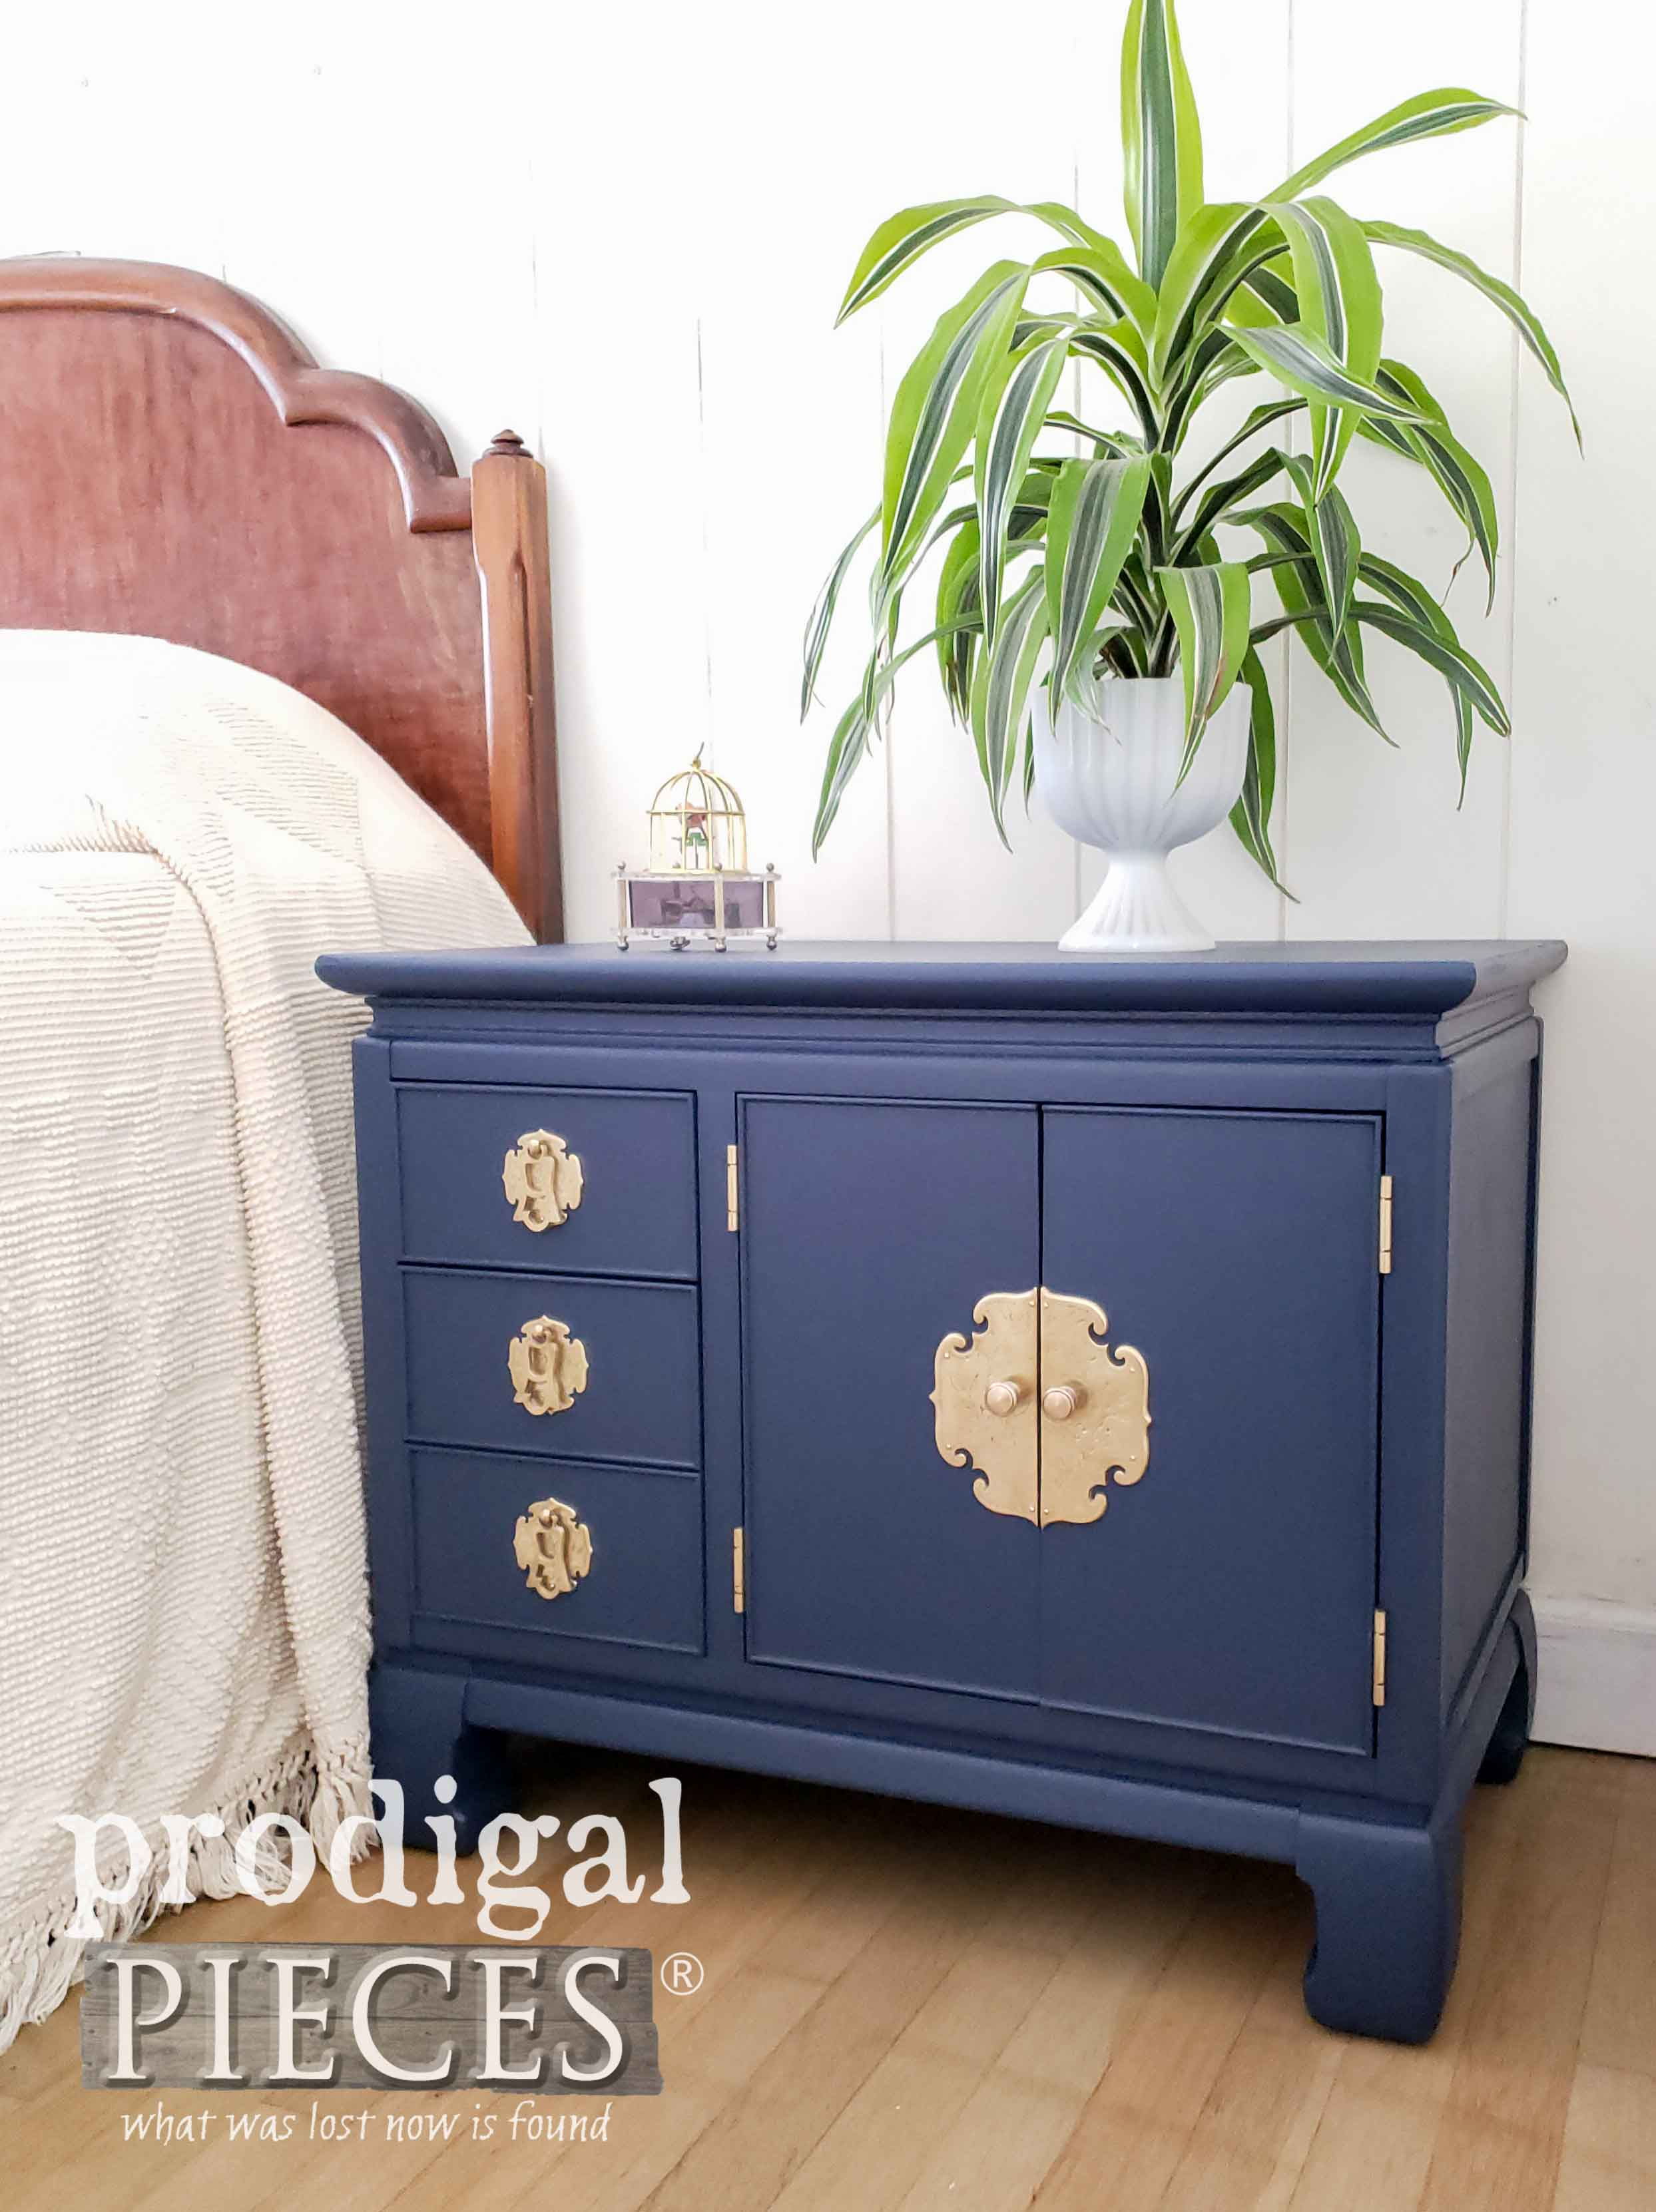 Royal Blue Vintage Nightstand with Brass Hardware for your Home Decor by Larissa of Prodigal Pieces | prodigalpieces.com